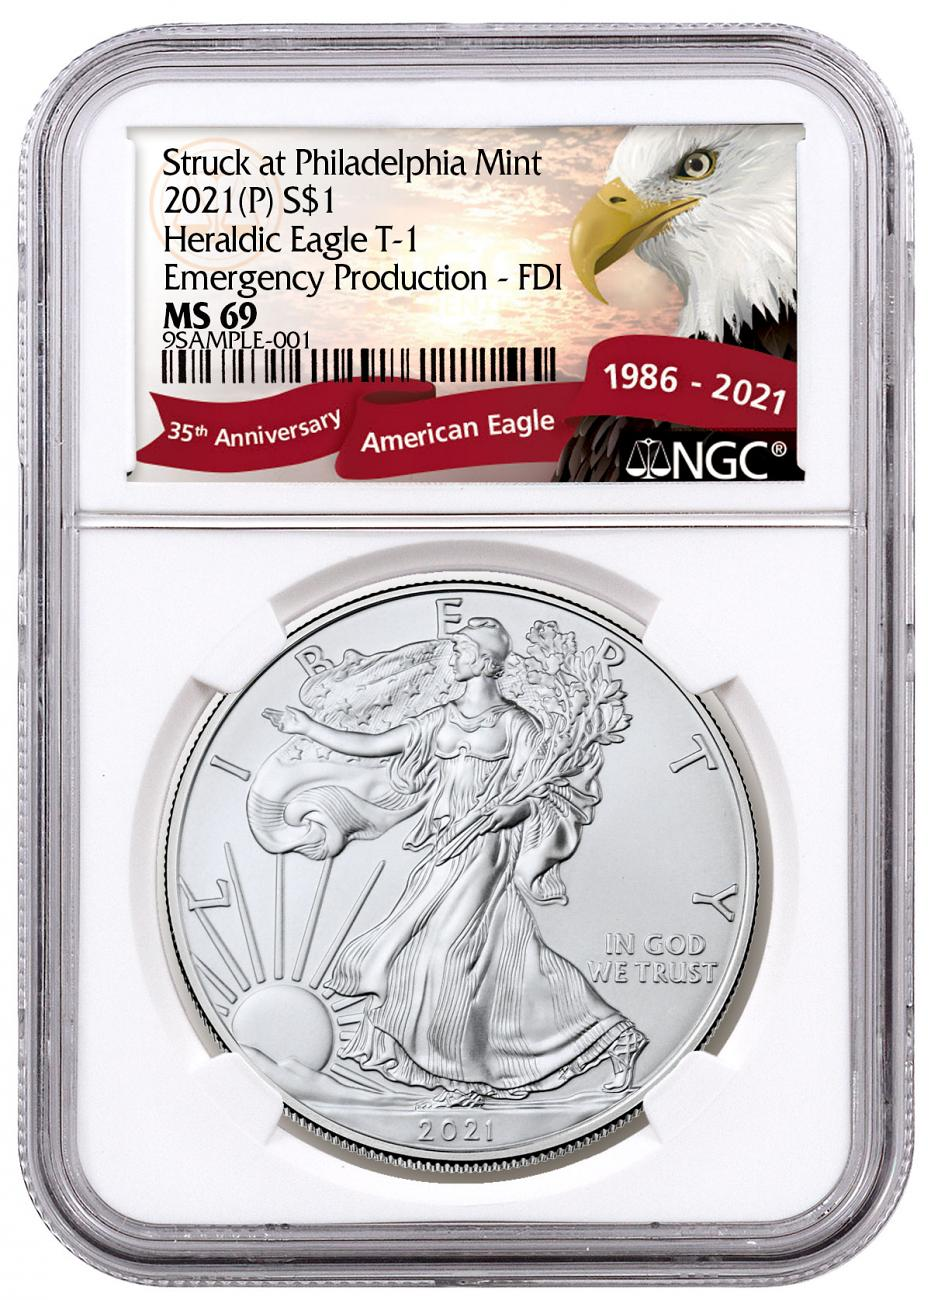 2021-(P) American Silver Eagle Struck at Philadelphia Mint - Emergency Production T-1 NGC MS69 FDI Exclusive Eagle Label